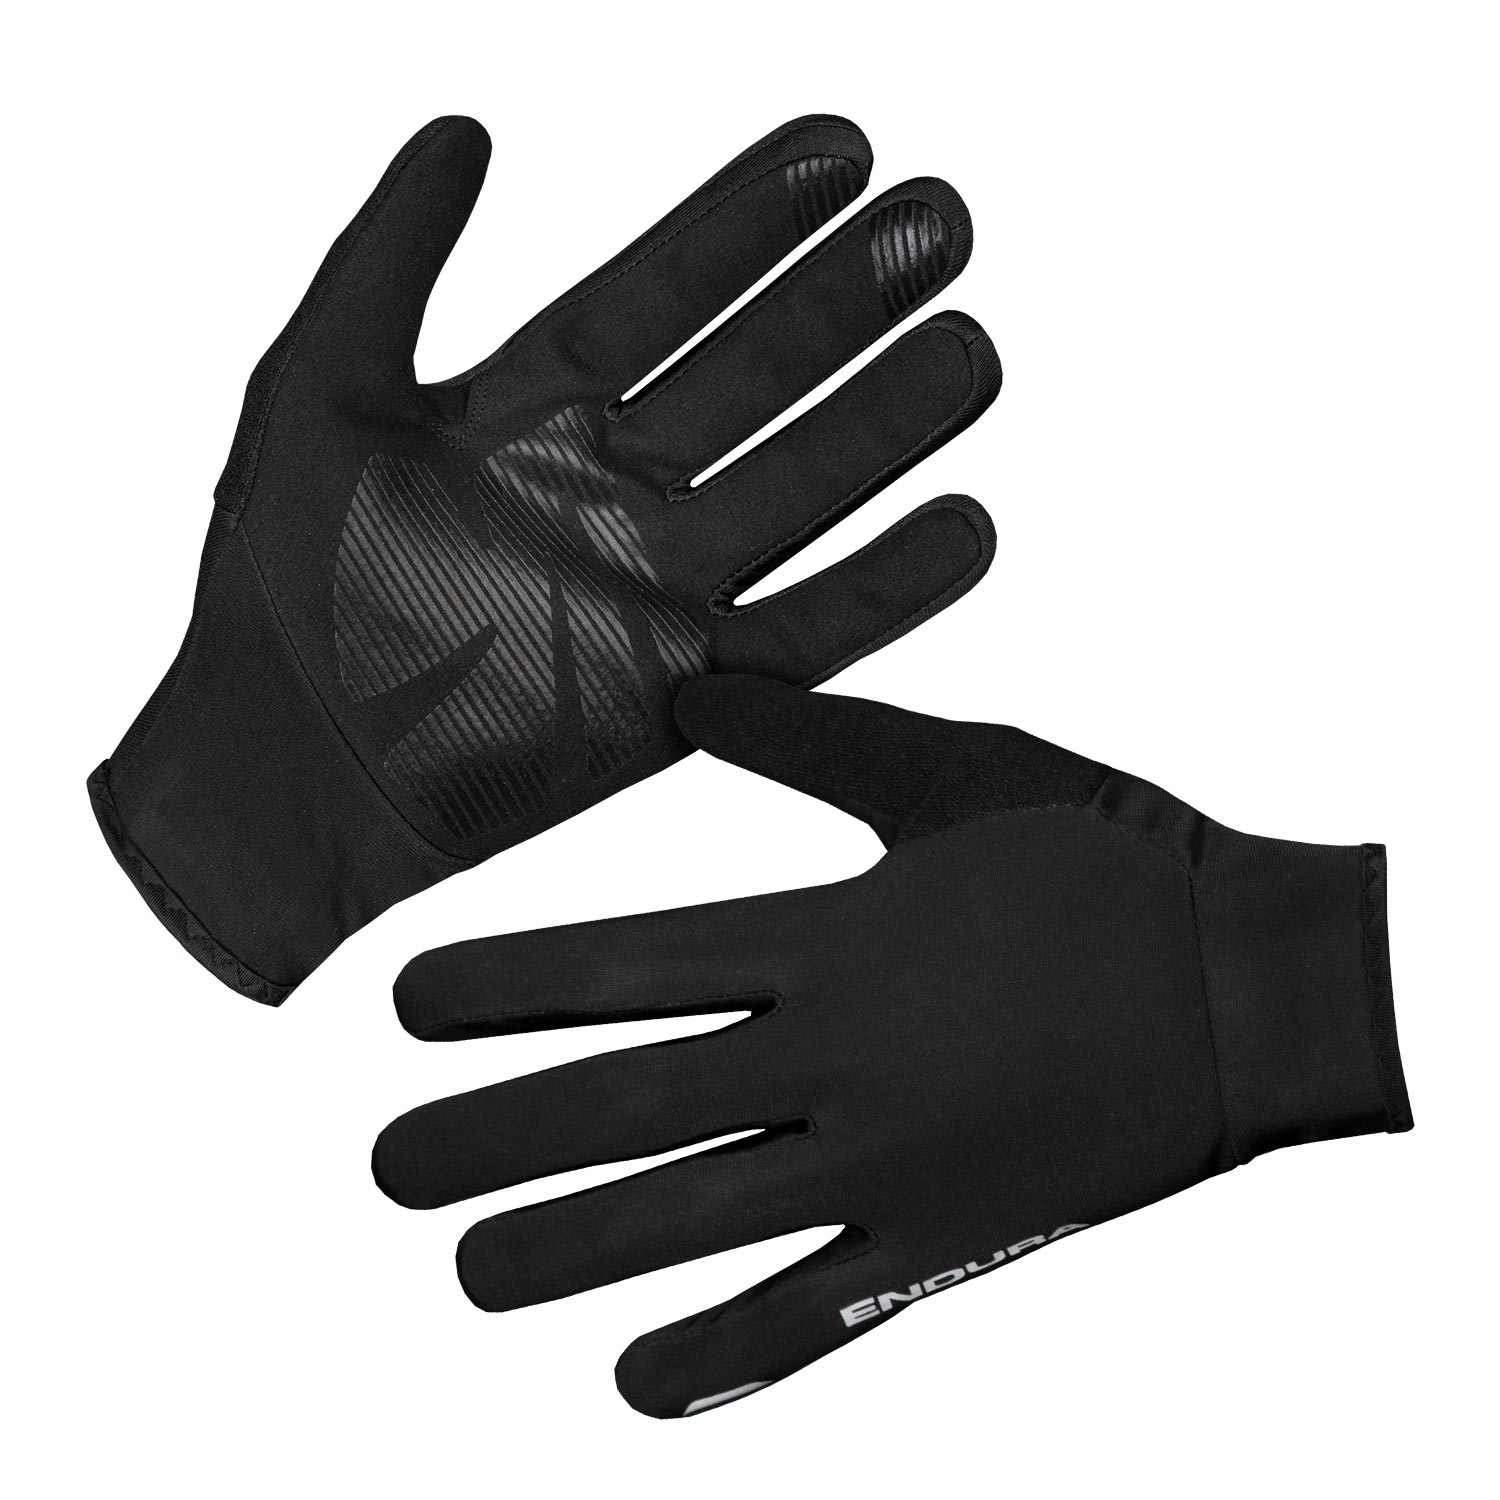 Endura FS260-Pro (Large) Thermo Cycling Gloves